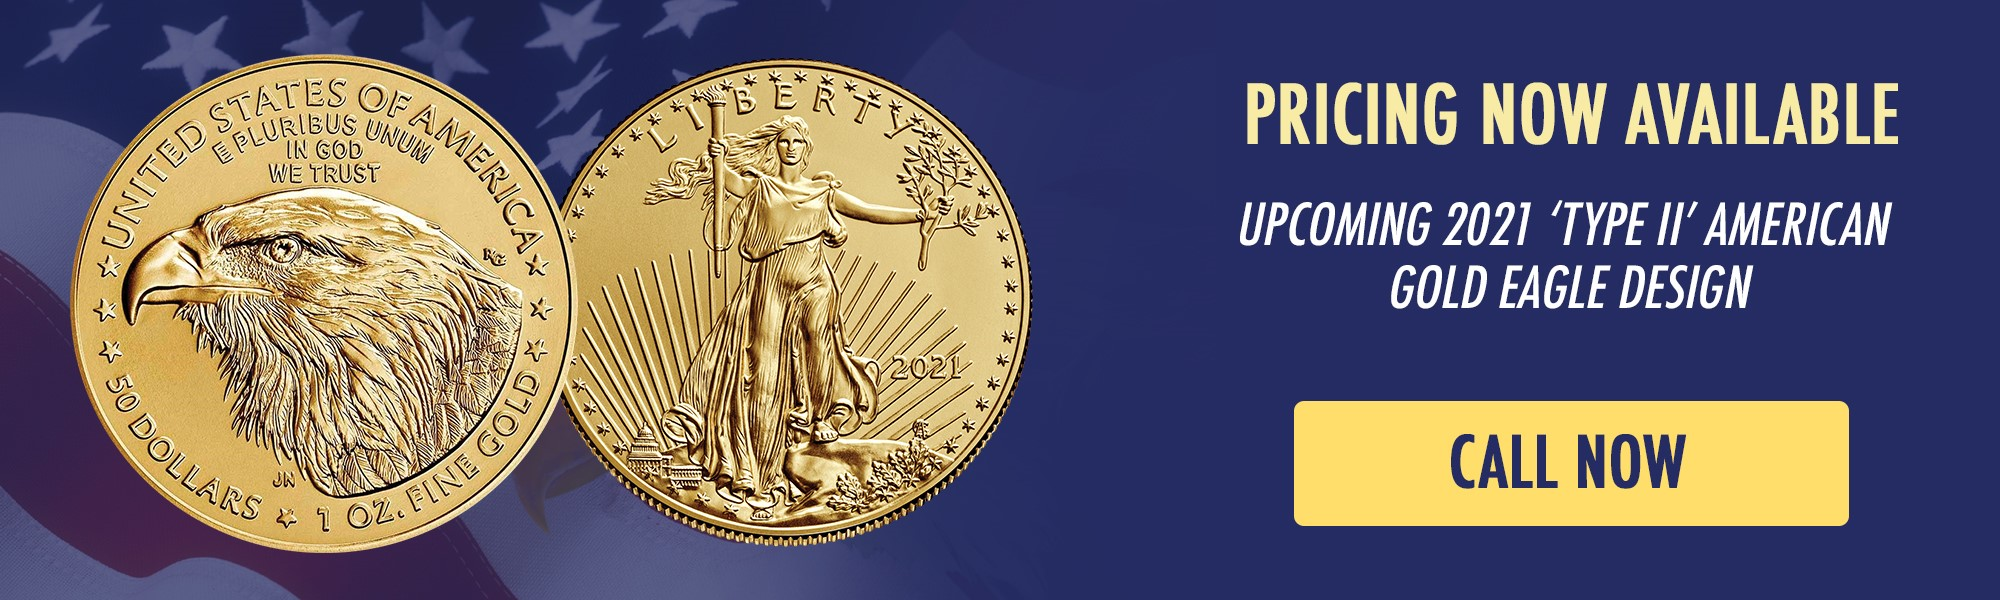 Order the New 2021 Gold Eagle Type 2 Now